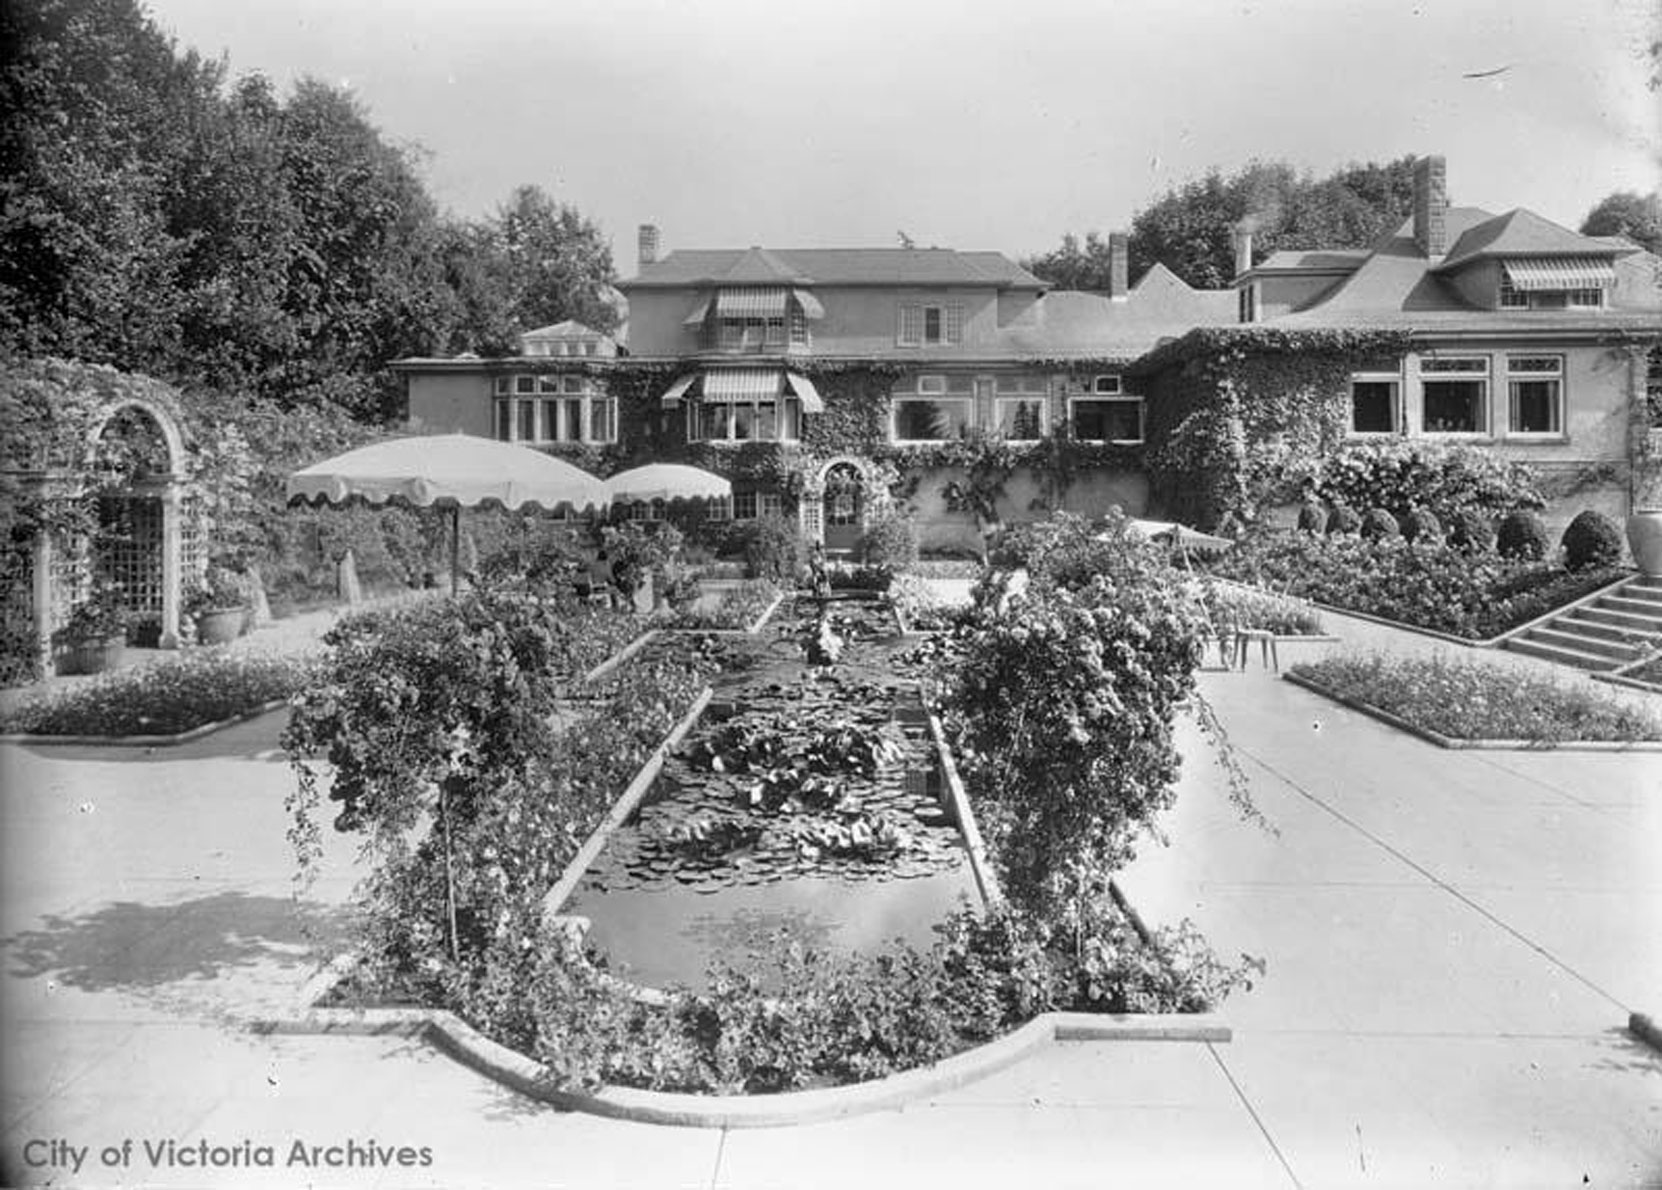 Benvenuto and the Italian Garden circa 1926-1927, prior to the addition designed by architect Samuel Maclure for the east side of Benvenuto. The Roas Arbors designed by Samuel Maclure are also visible in this photograph. (City of Victoria Archives photo M07113)